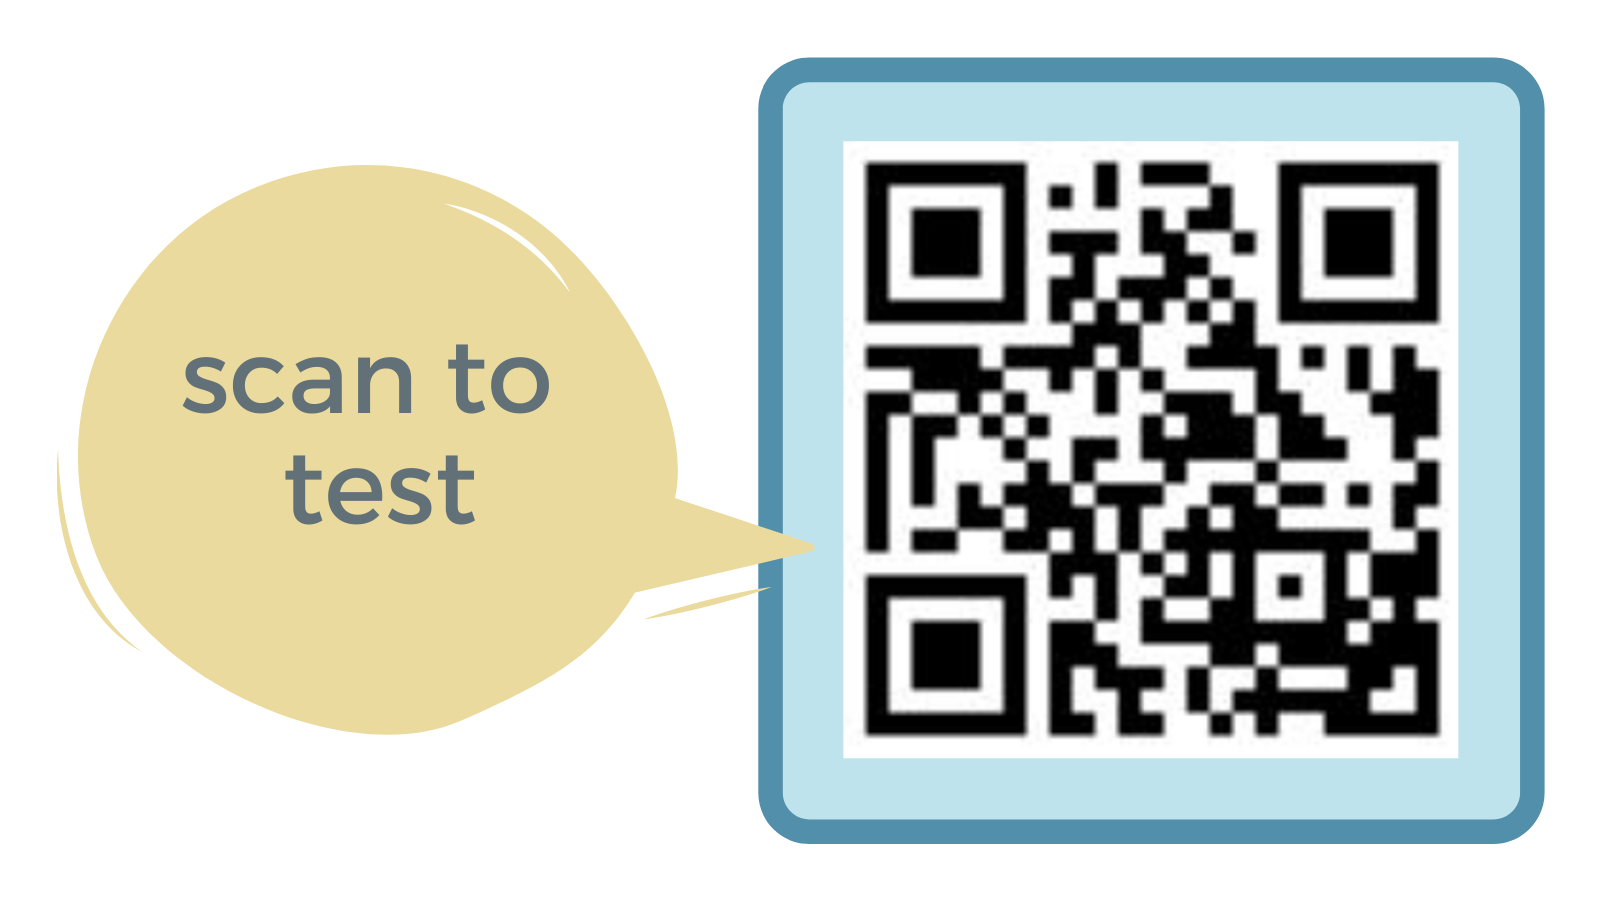 Scan to test SMSgiving